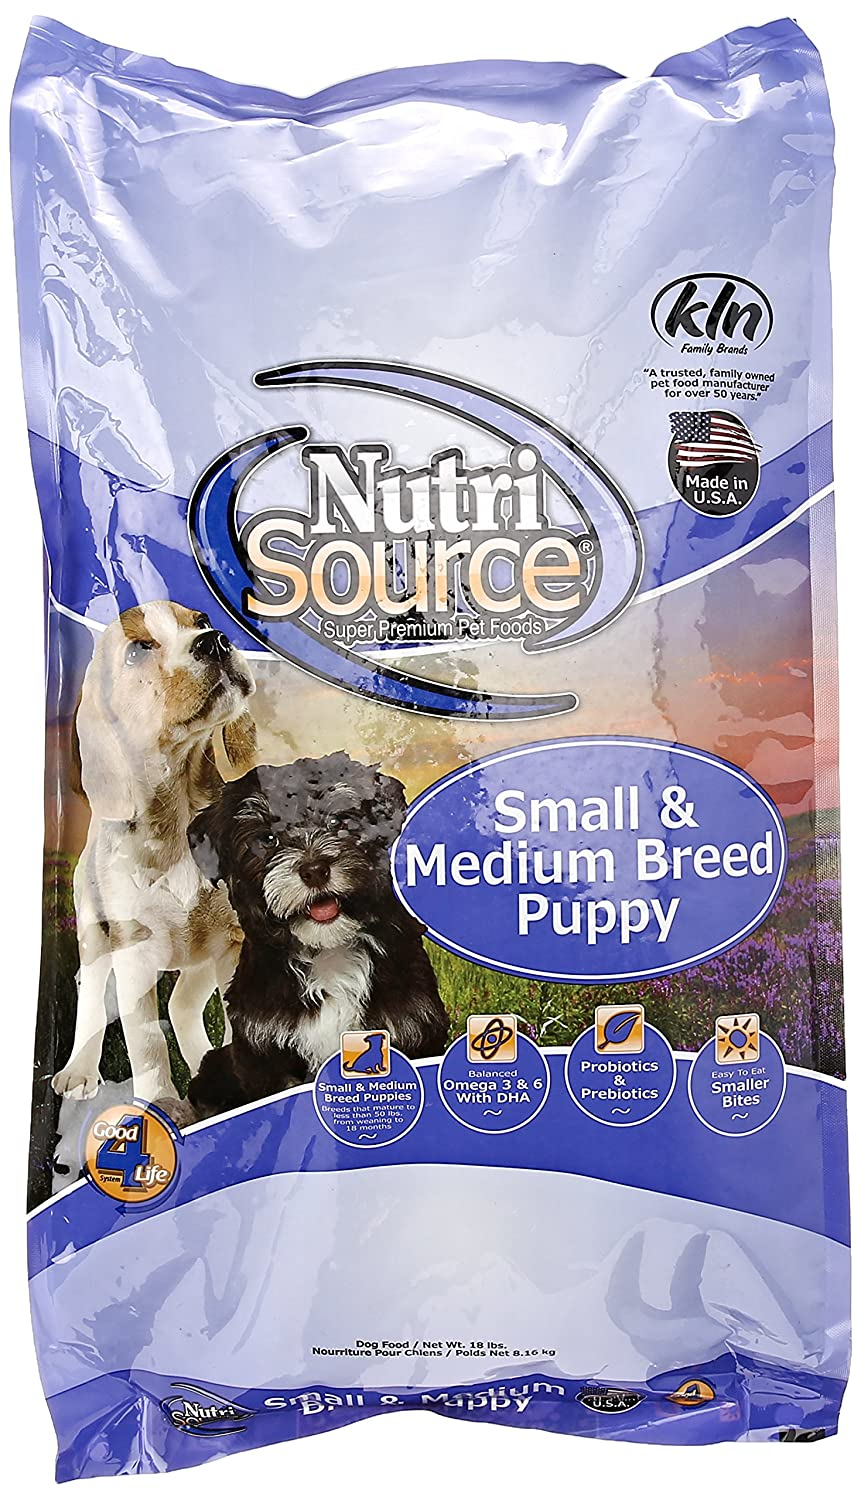 Nutrisource, Dry Dog Food, Small Breed Puppy Chicken Rice Formula, 18 Lb